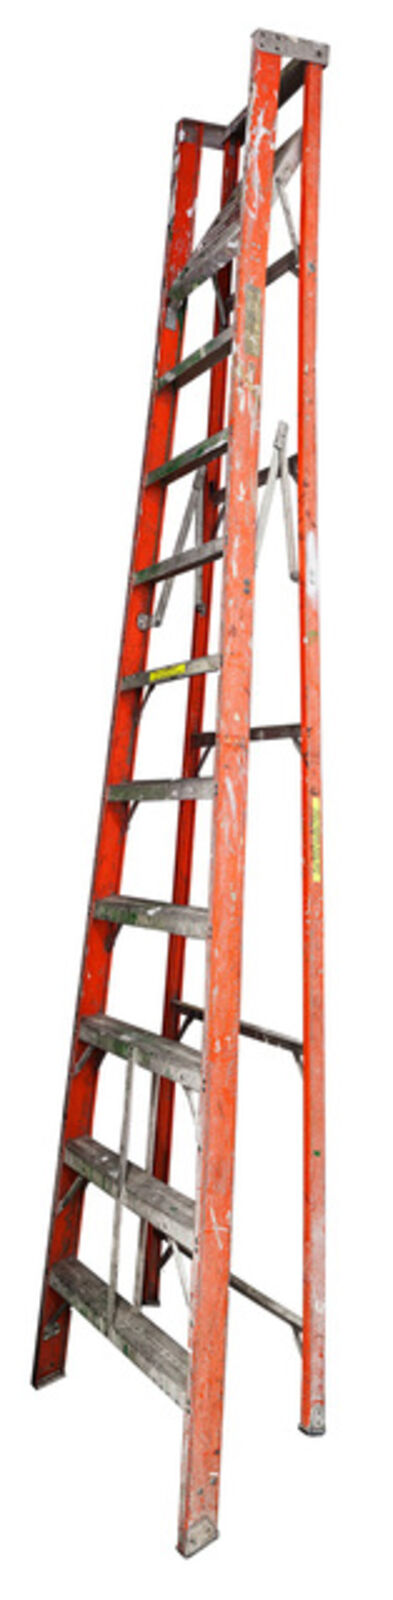 Jennifer Williams, 'Large Folding Ladder: Orange with Platform', 2012